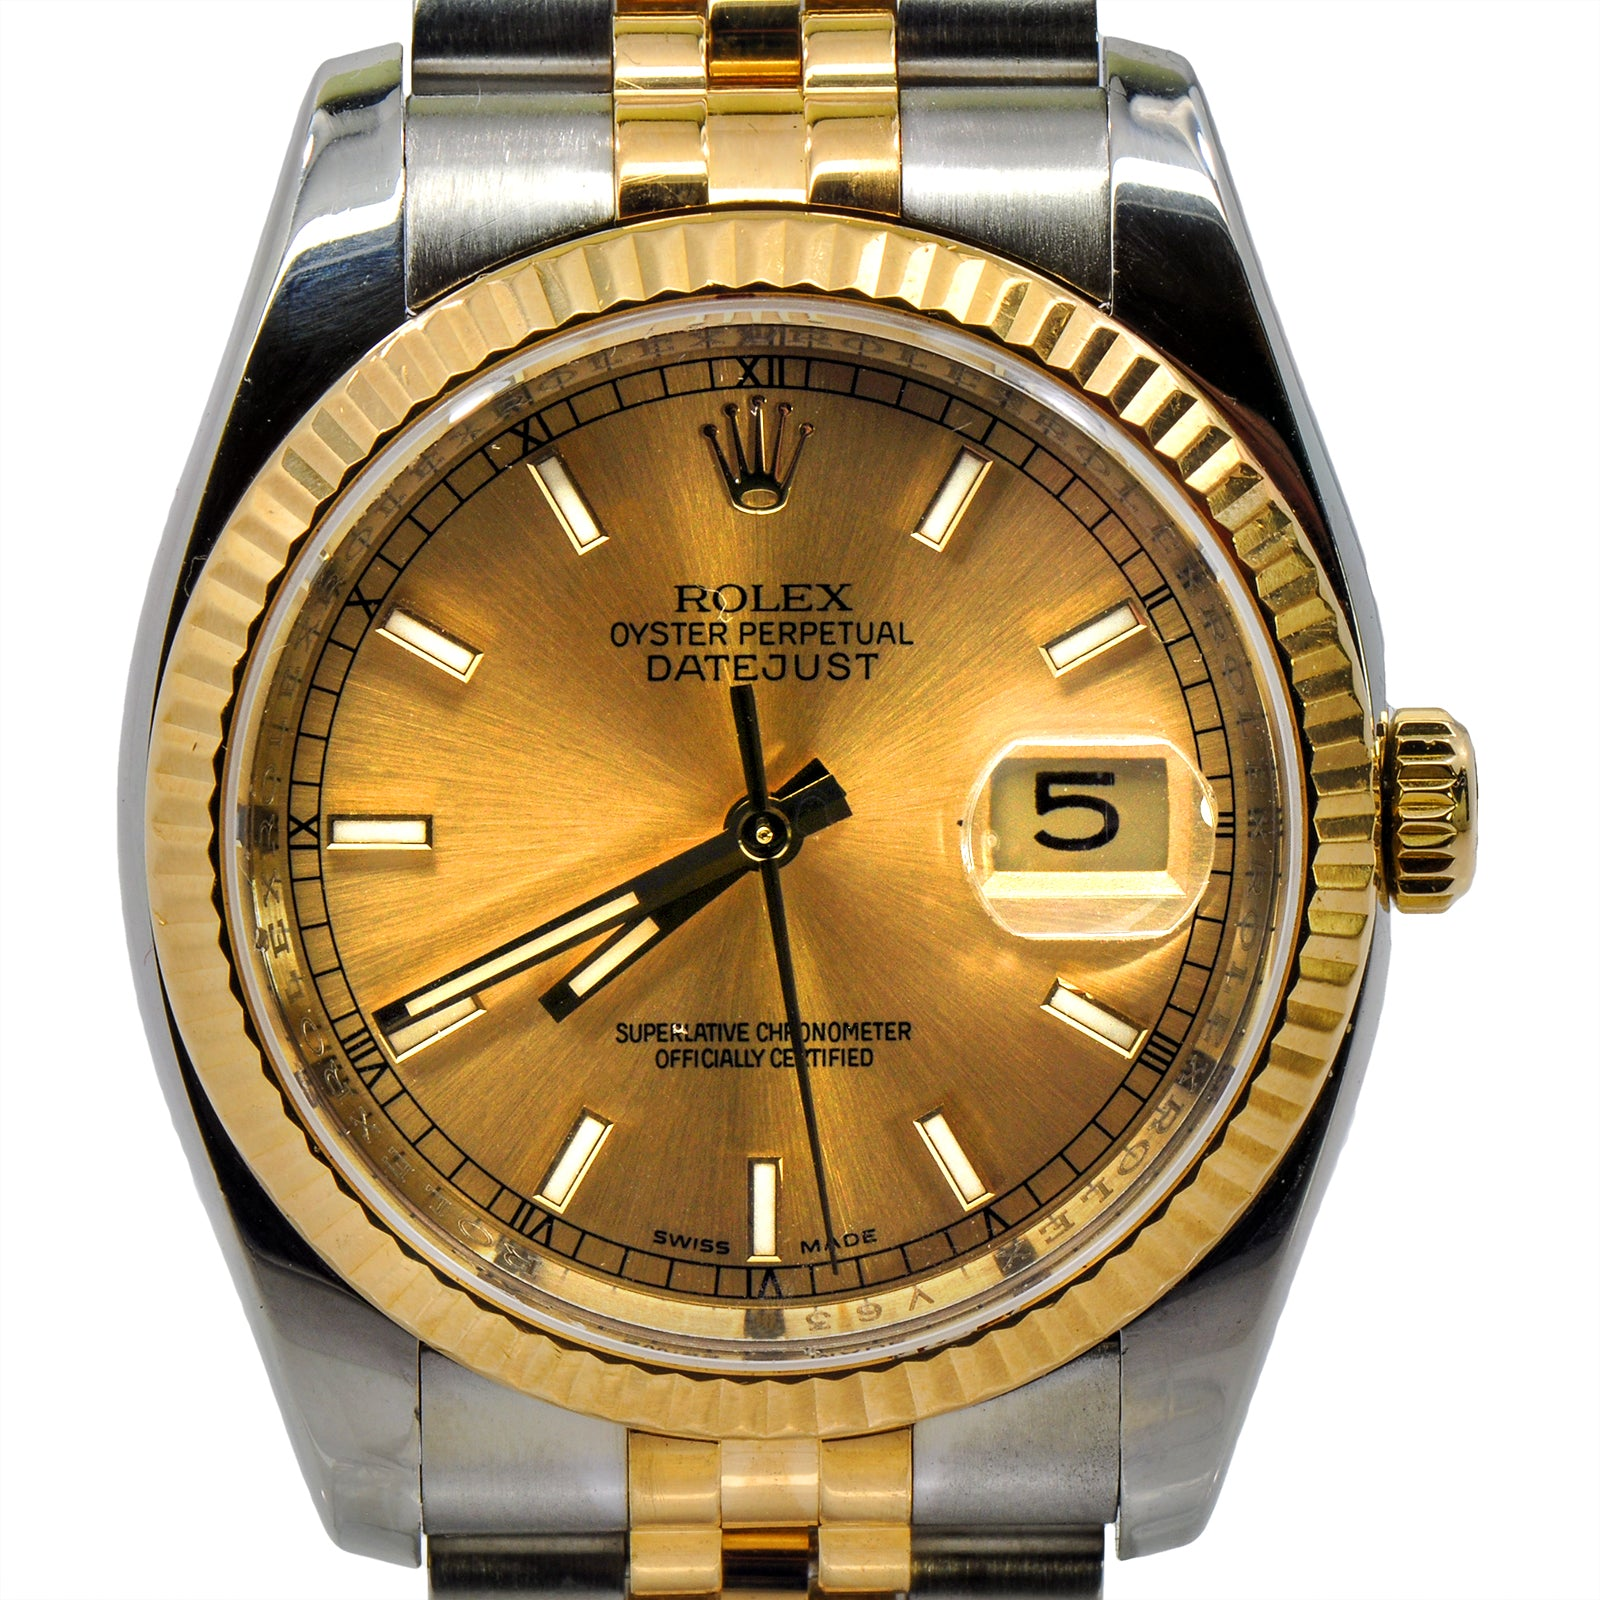 Rolex Datejust 116233 With Champagne Dial and Fluted Bezel-2